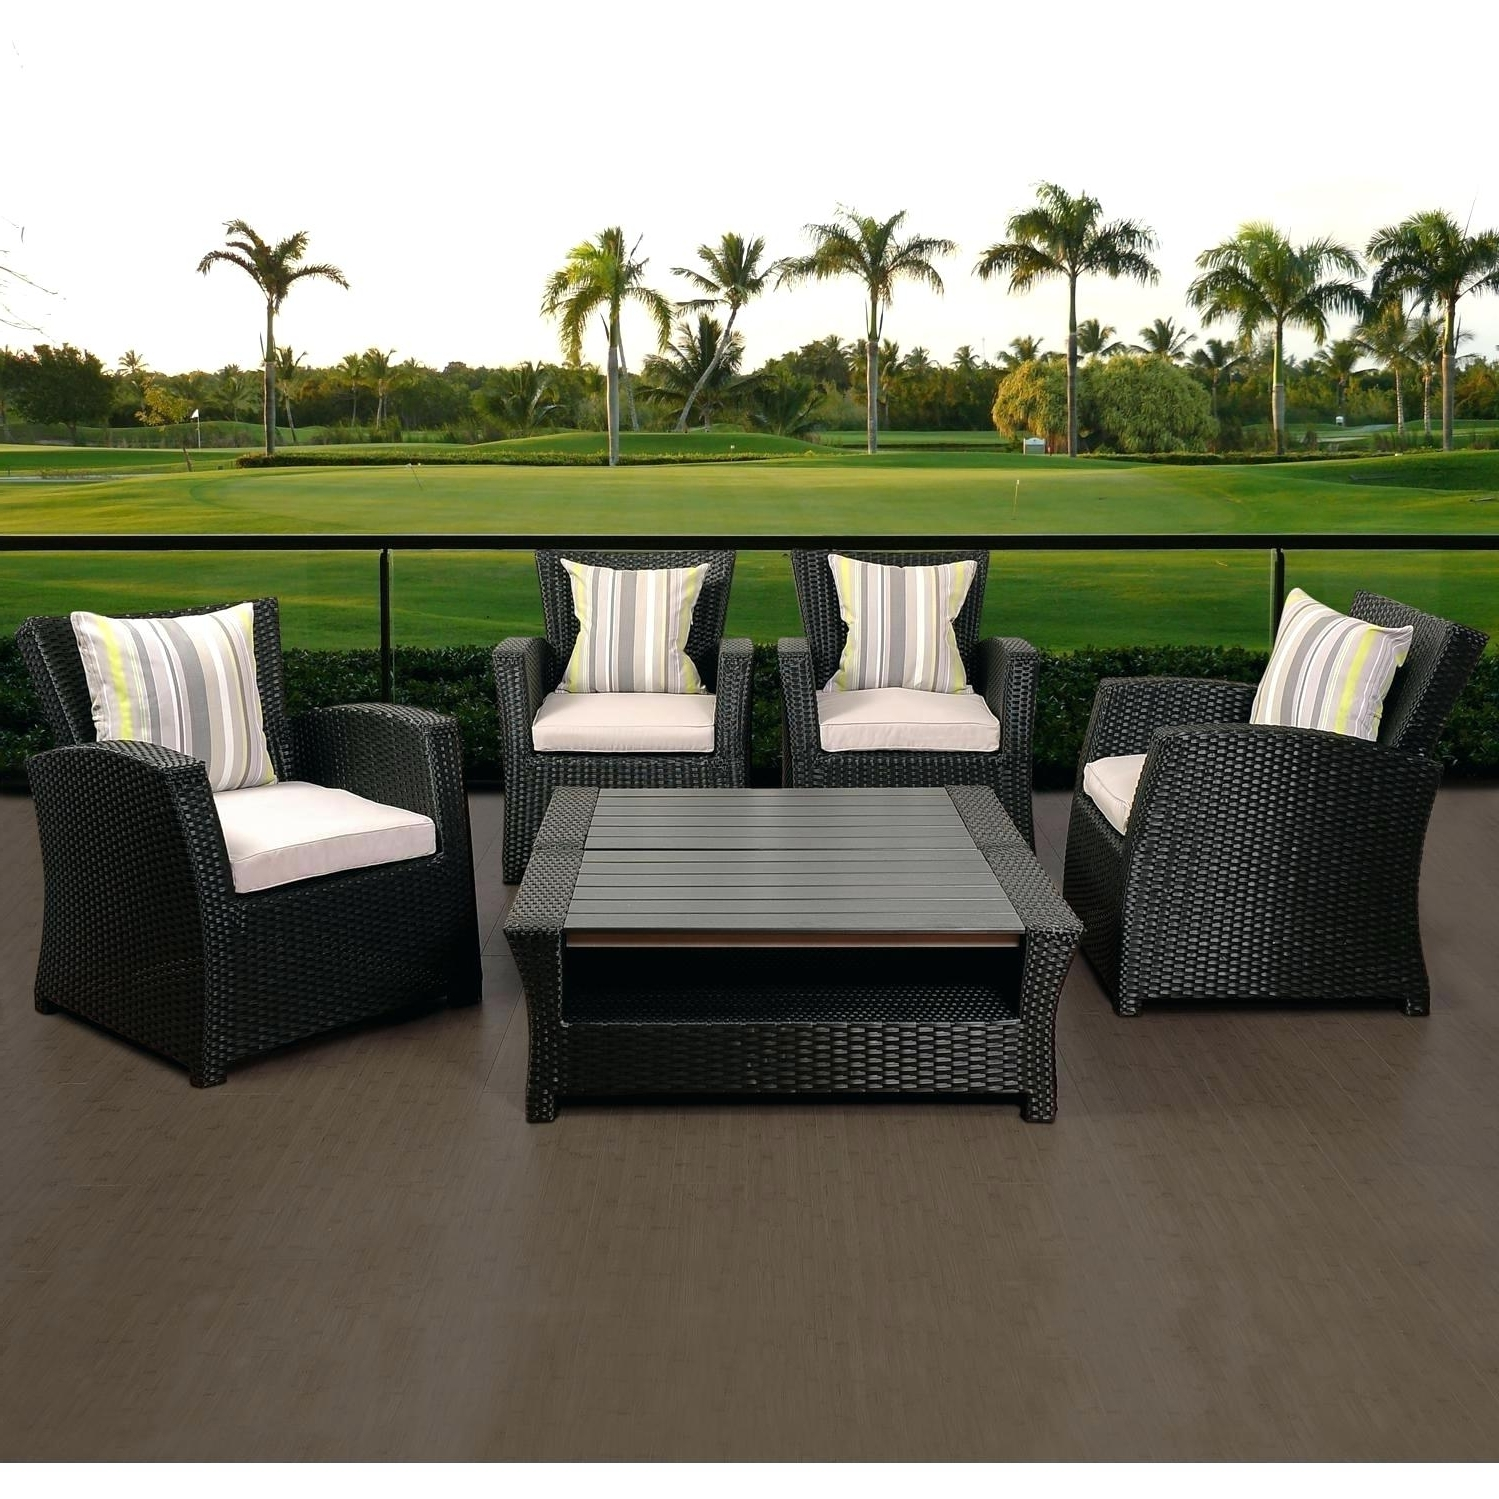 Preferred Conversation Patio Sets With Outdoor Sectionals Regarding Conversation Sets Patio Set With Fire Pit Table Outdoor Sectionals (View 14 of 20)